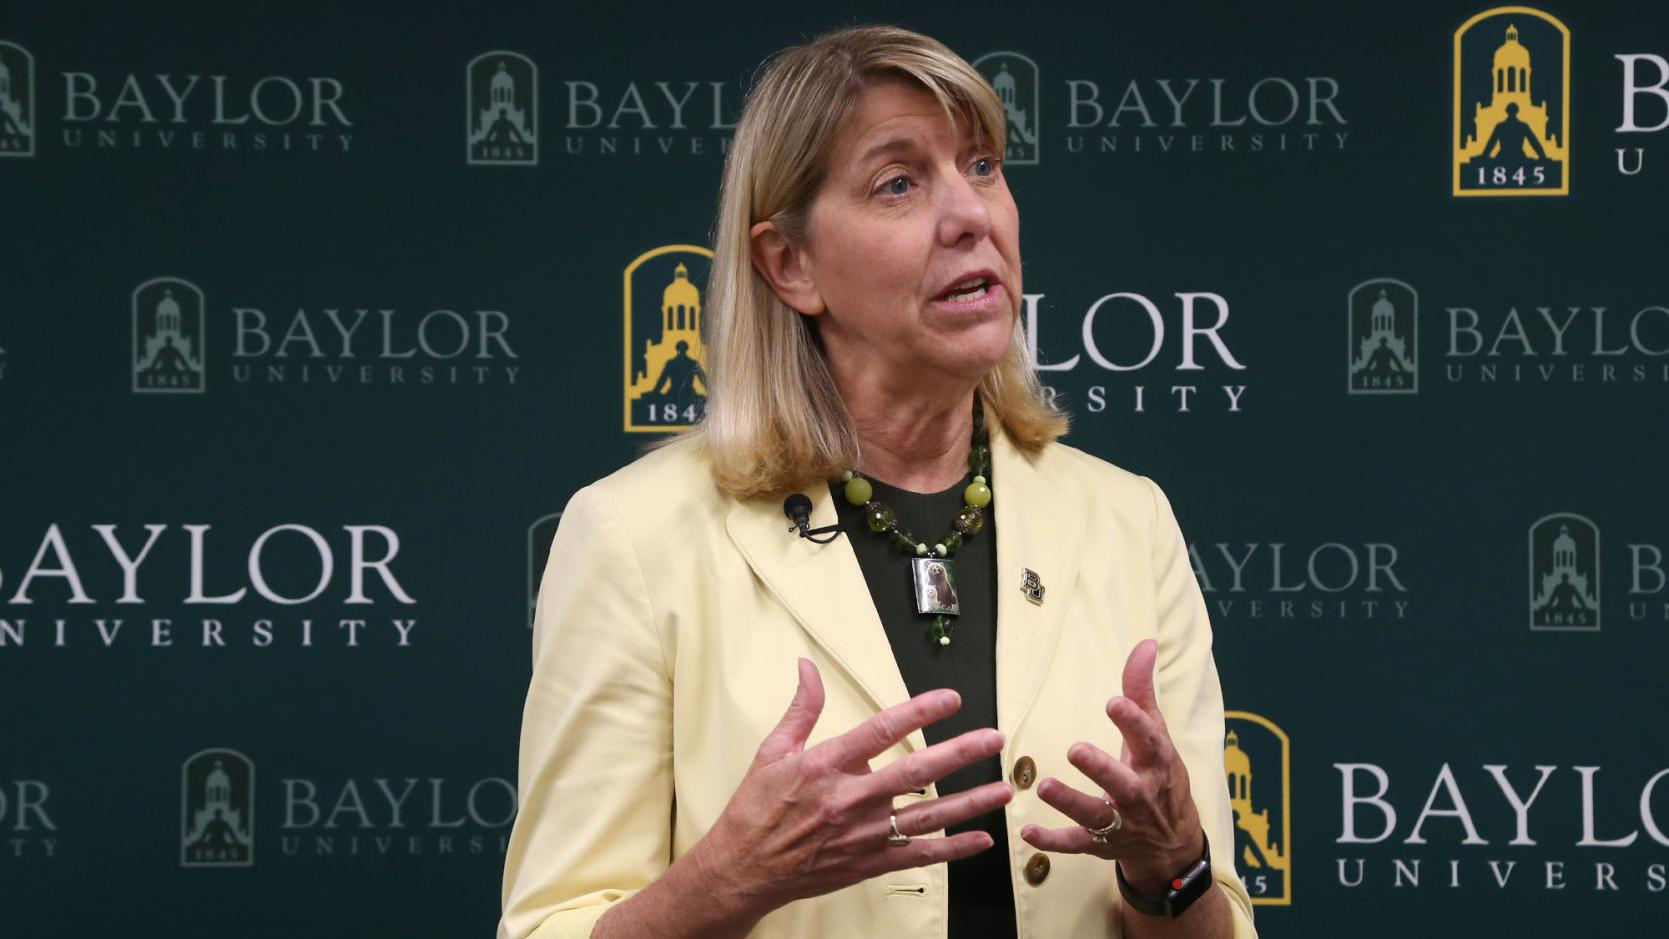 Livingstone says she plans to stay at Baylor despite OSU vacancy